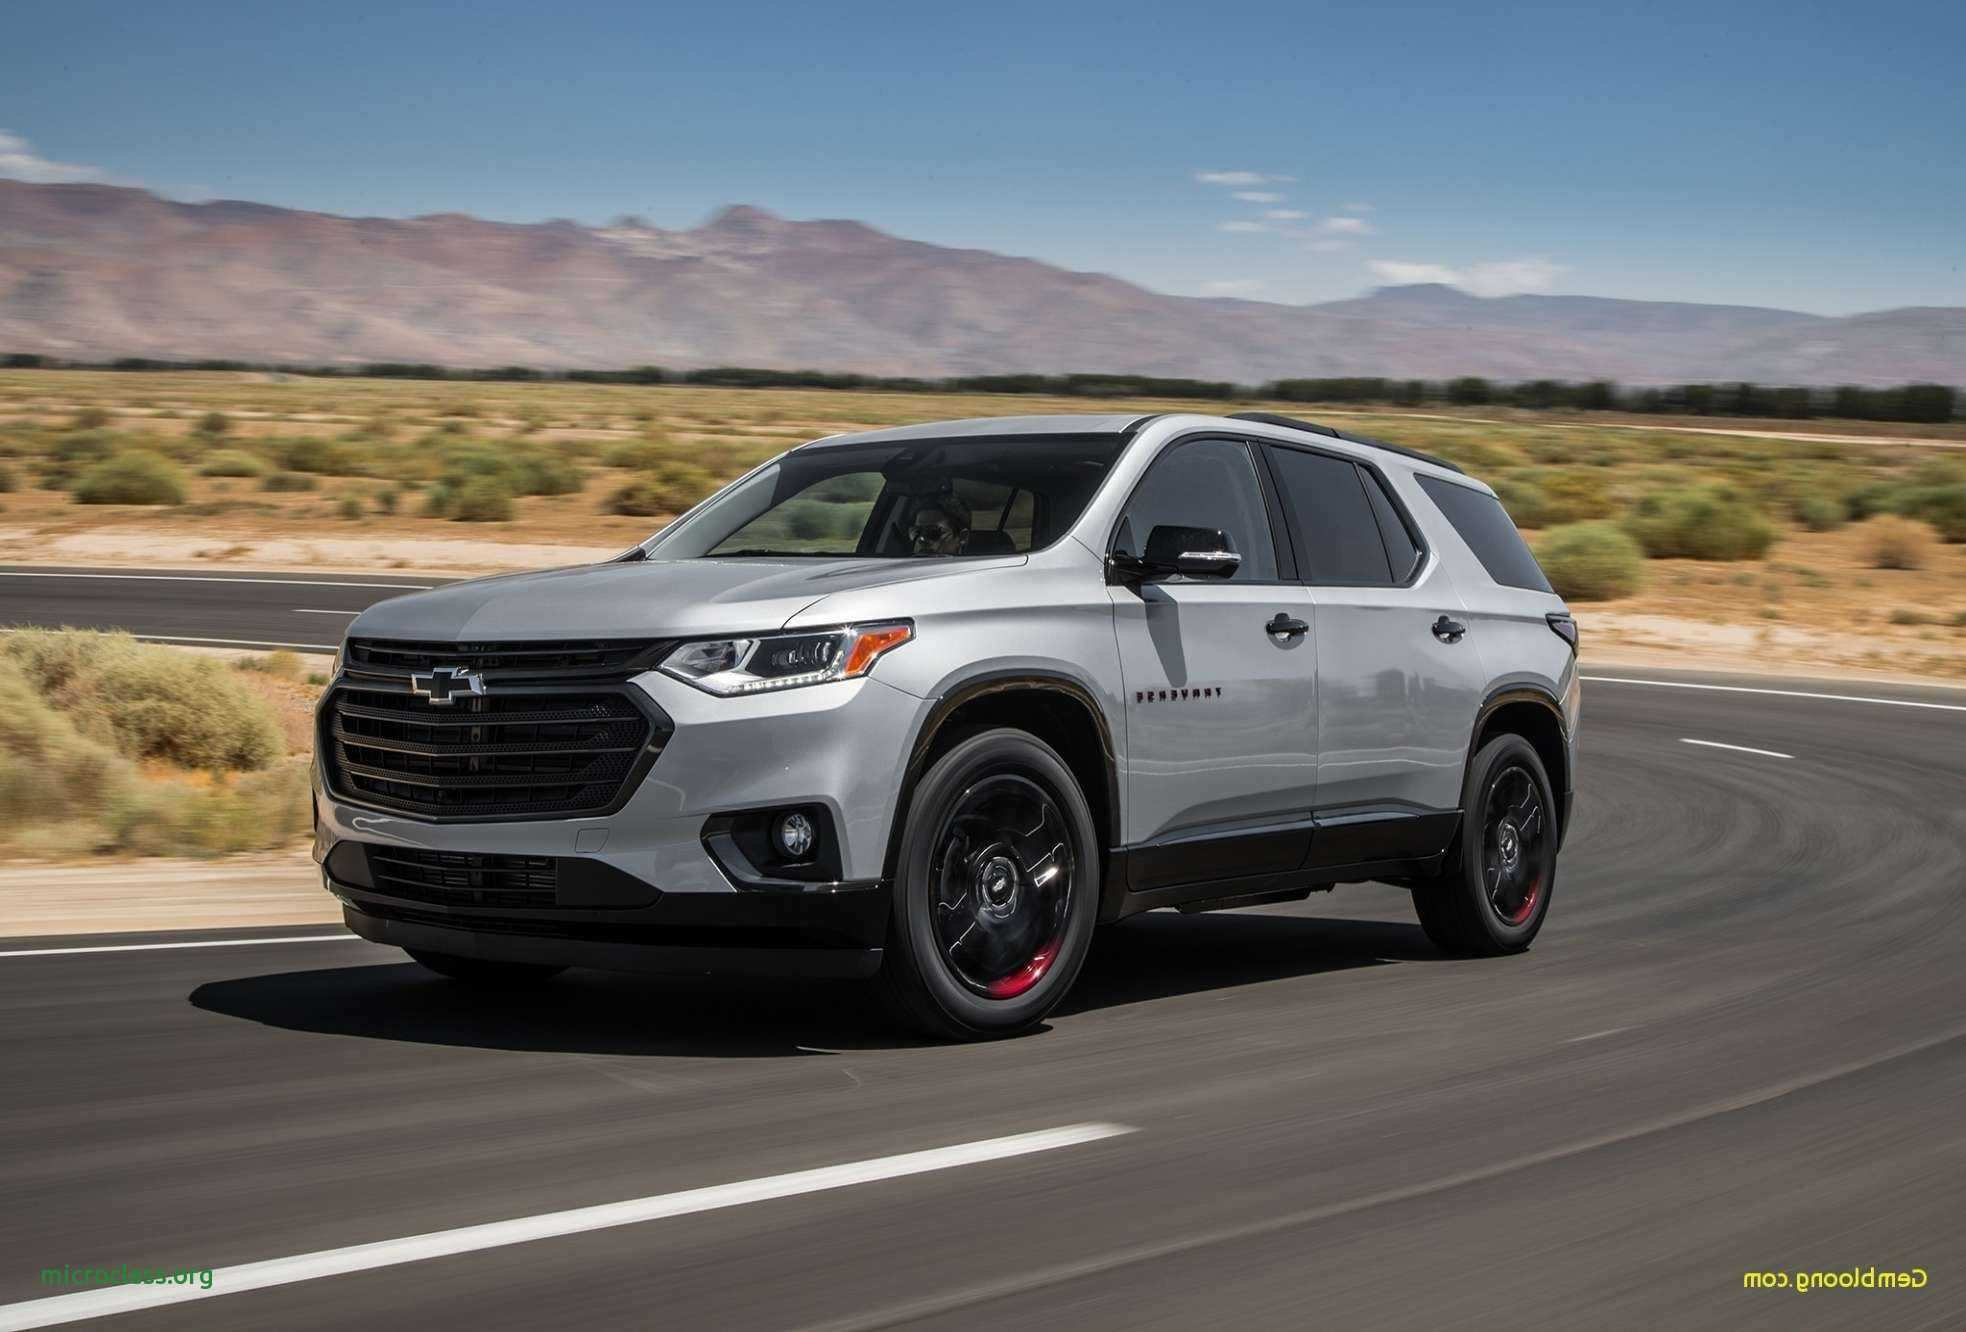 88 New 2019 Trailblazer Ss Speed Test for 2019 Trailblazer Ss